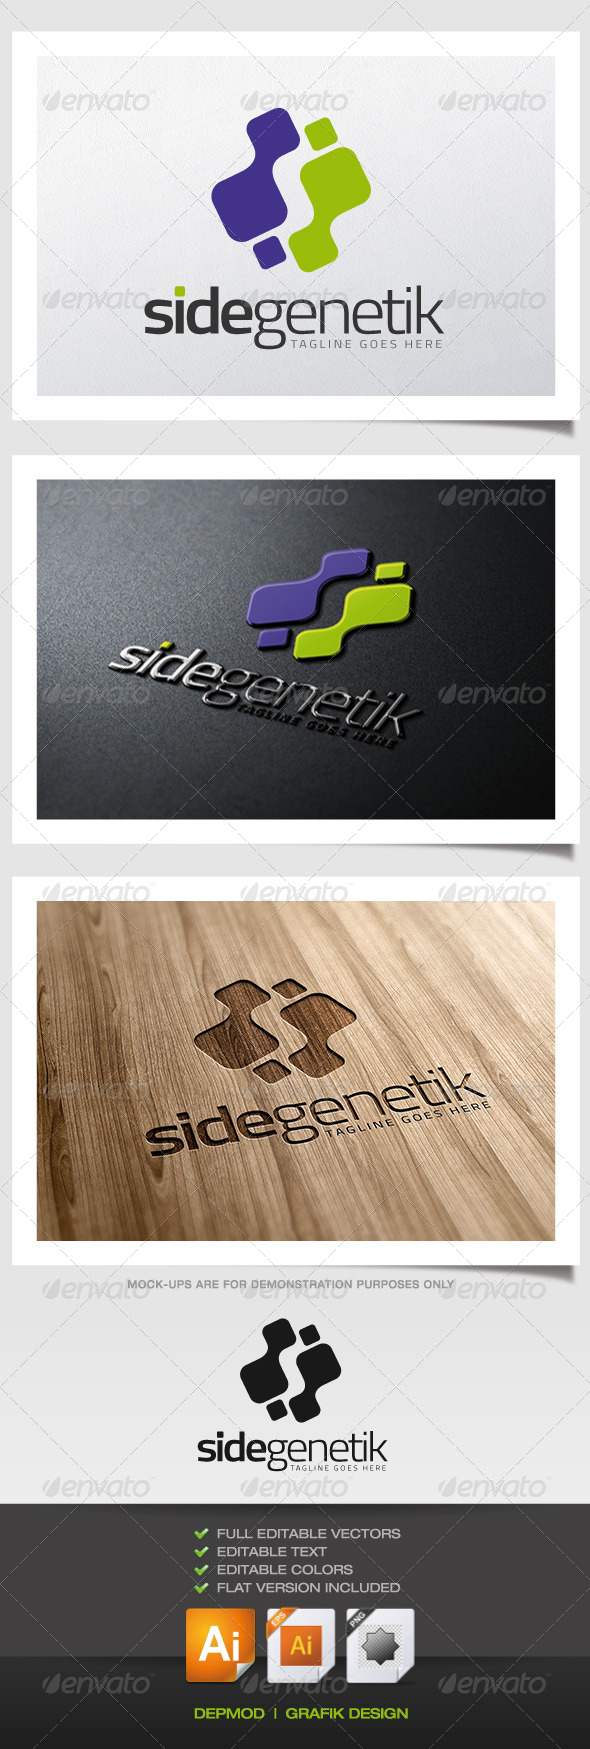 Side Genetik Logo - Abstract Logo Templates